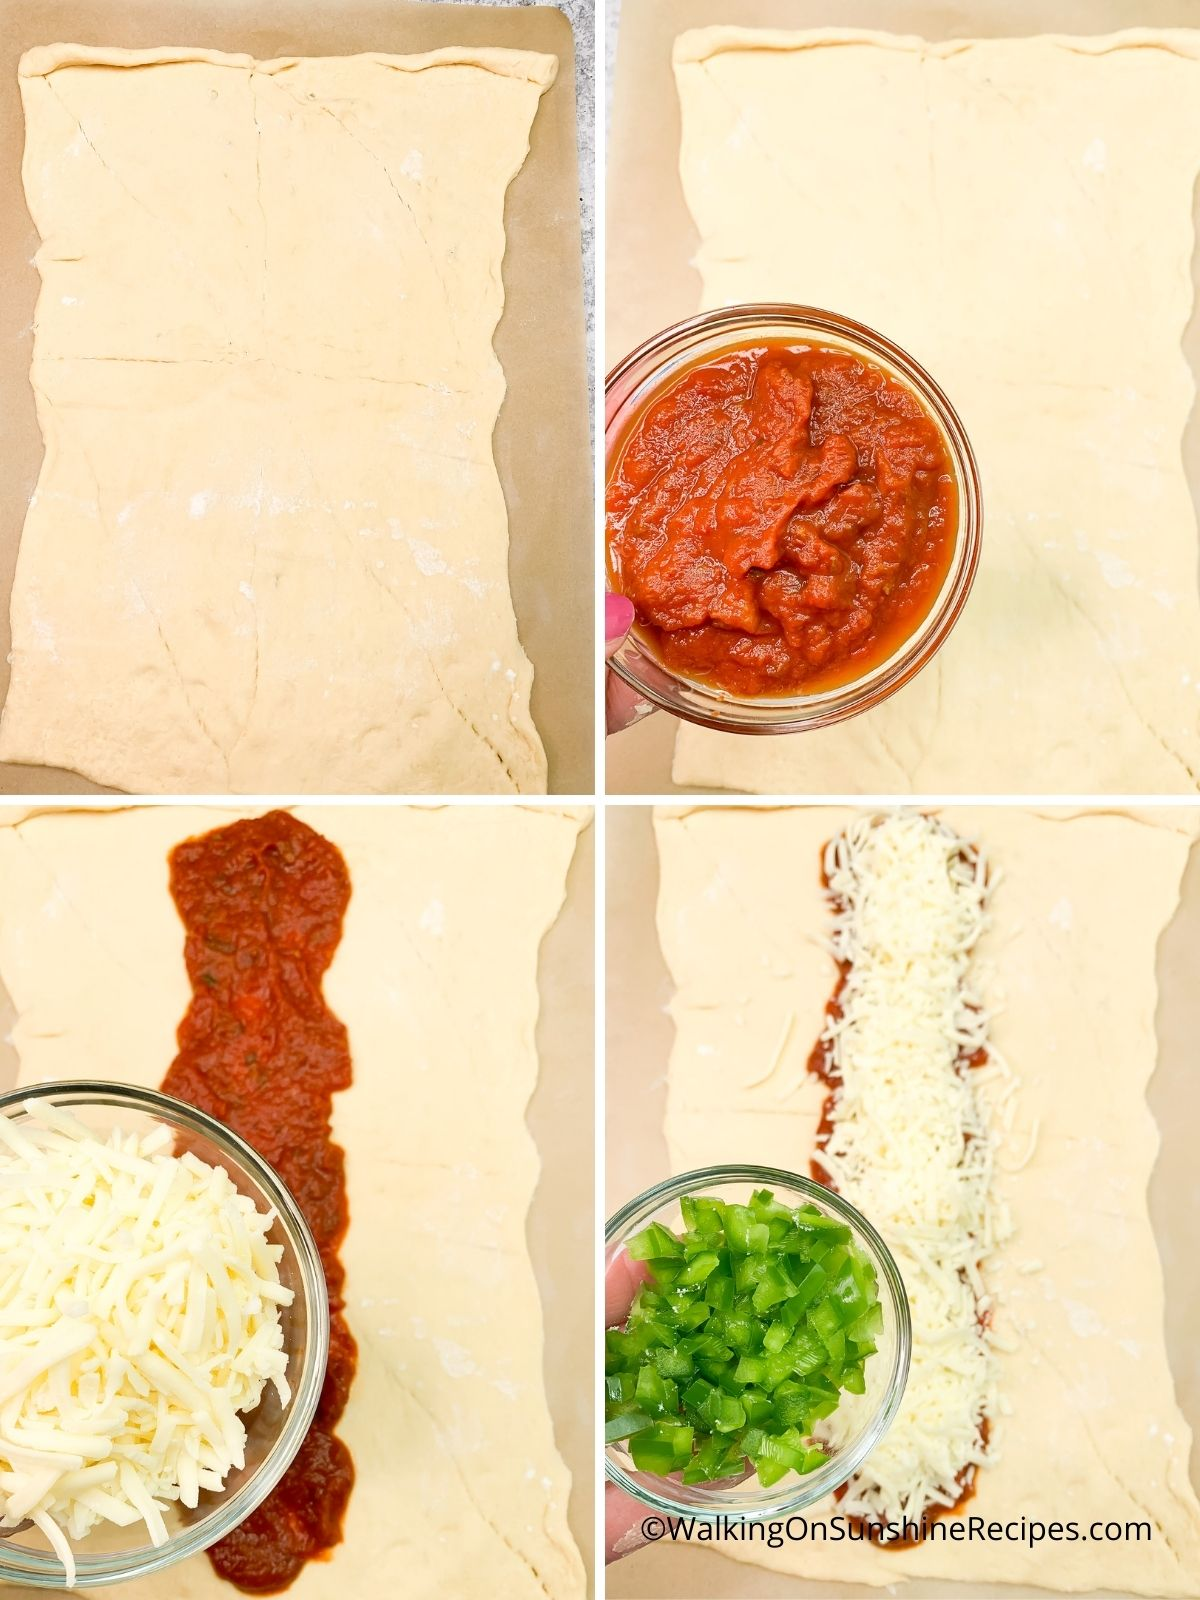 Spread sauce, cheese and peppers.